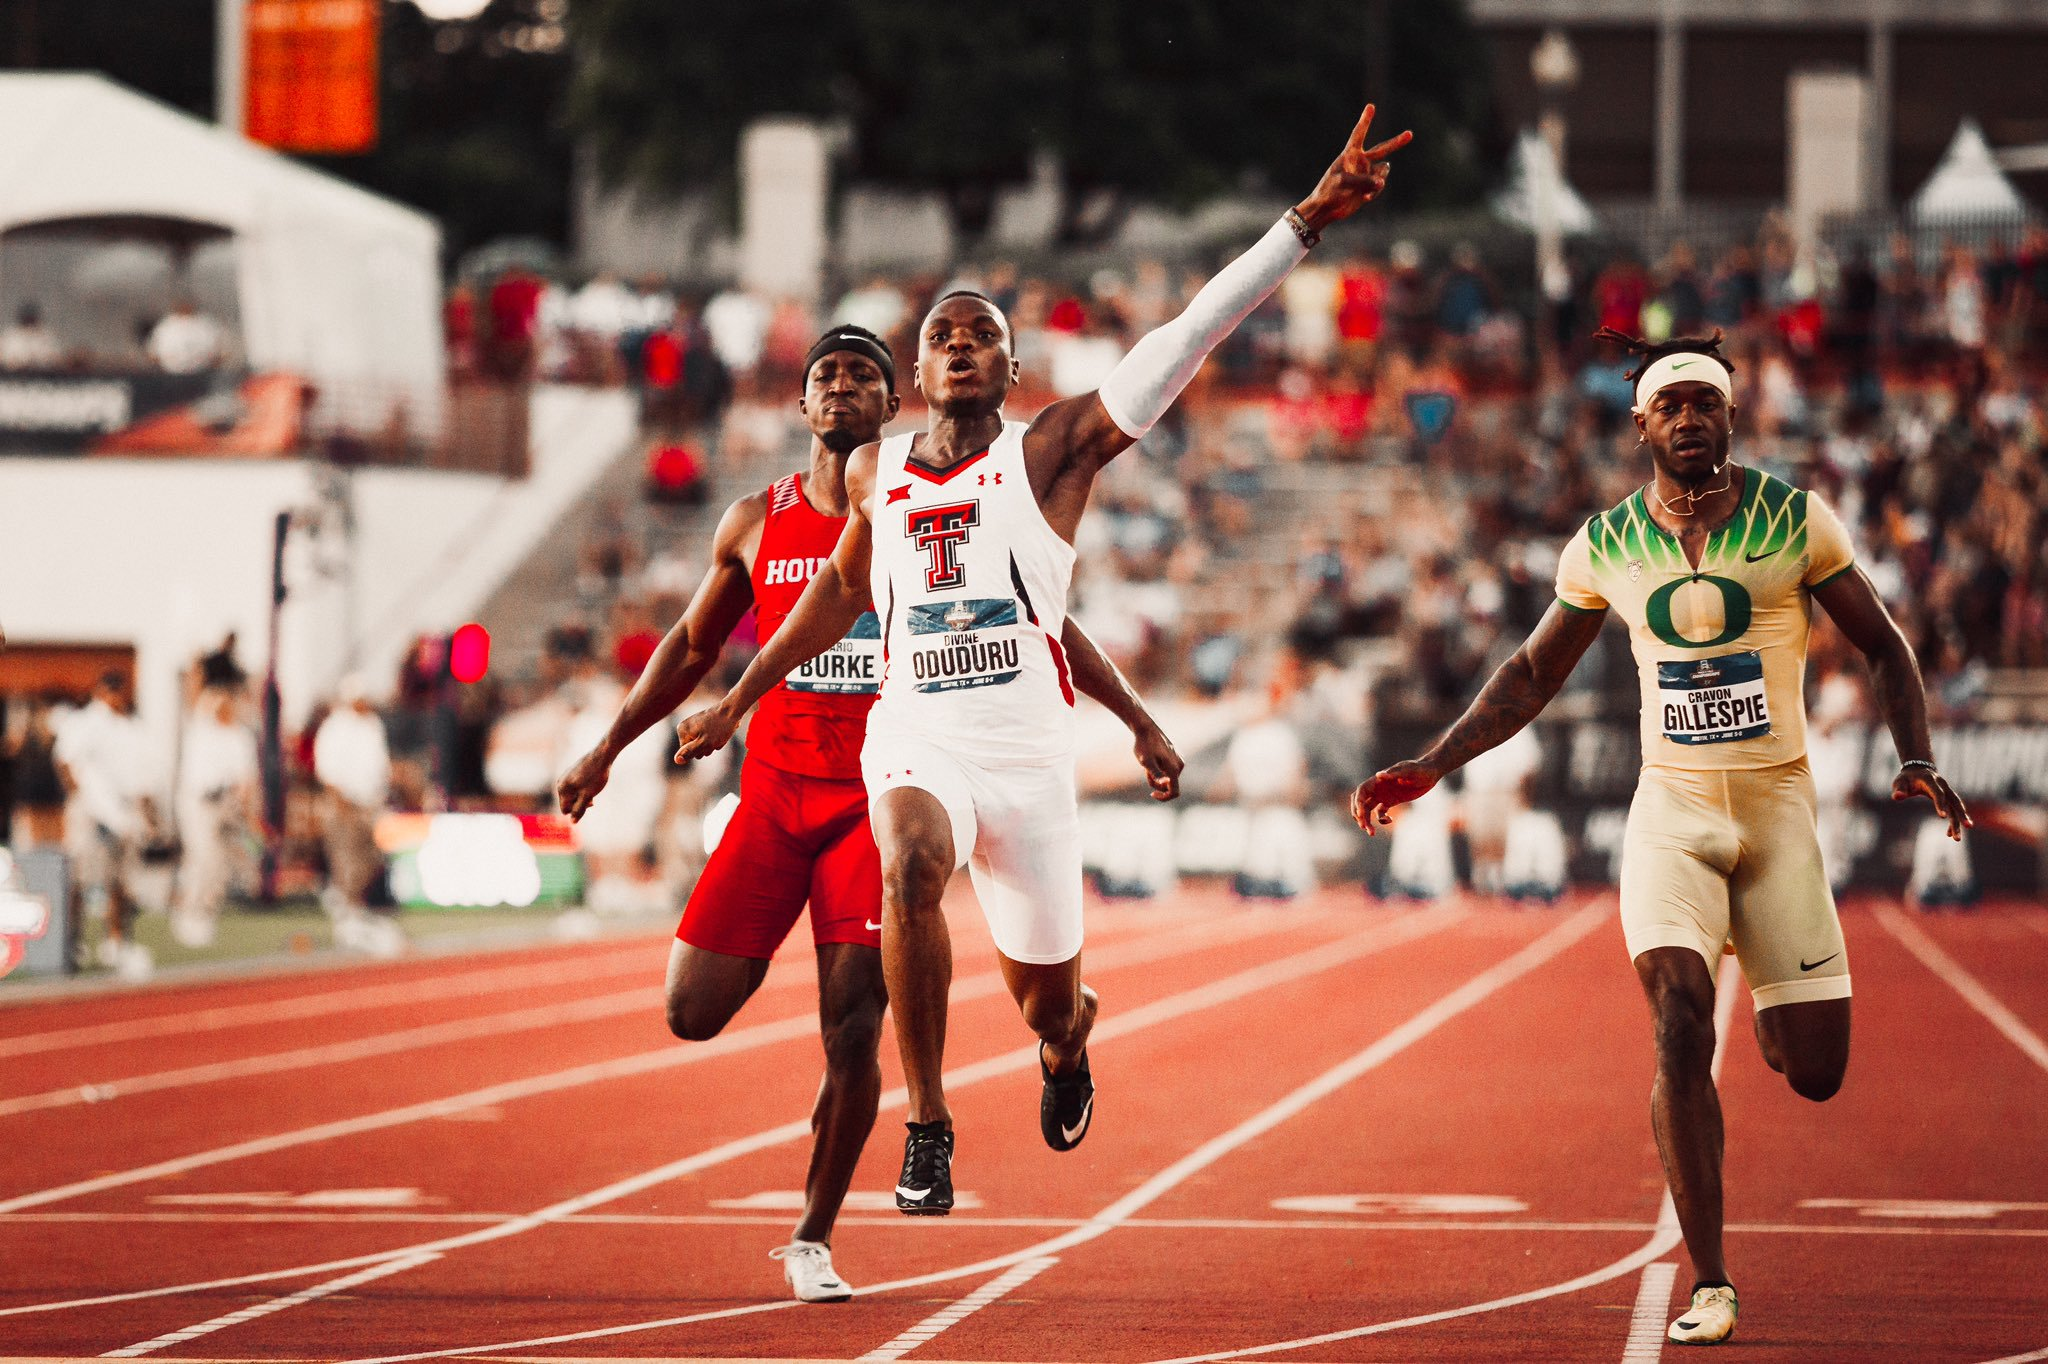 Divine Oduduru becomes 2nd fastest African ever (Video)